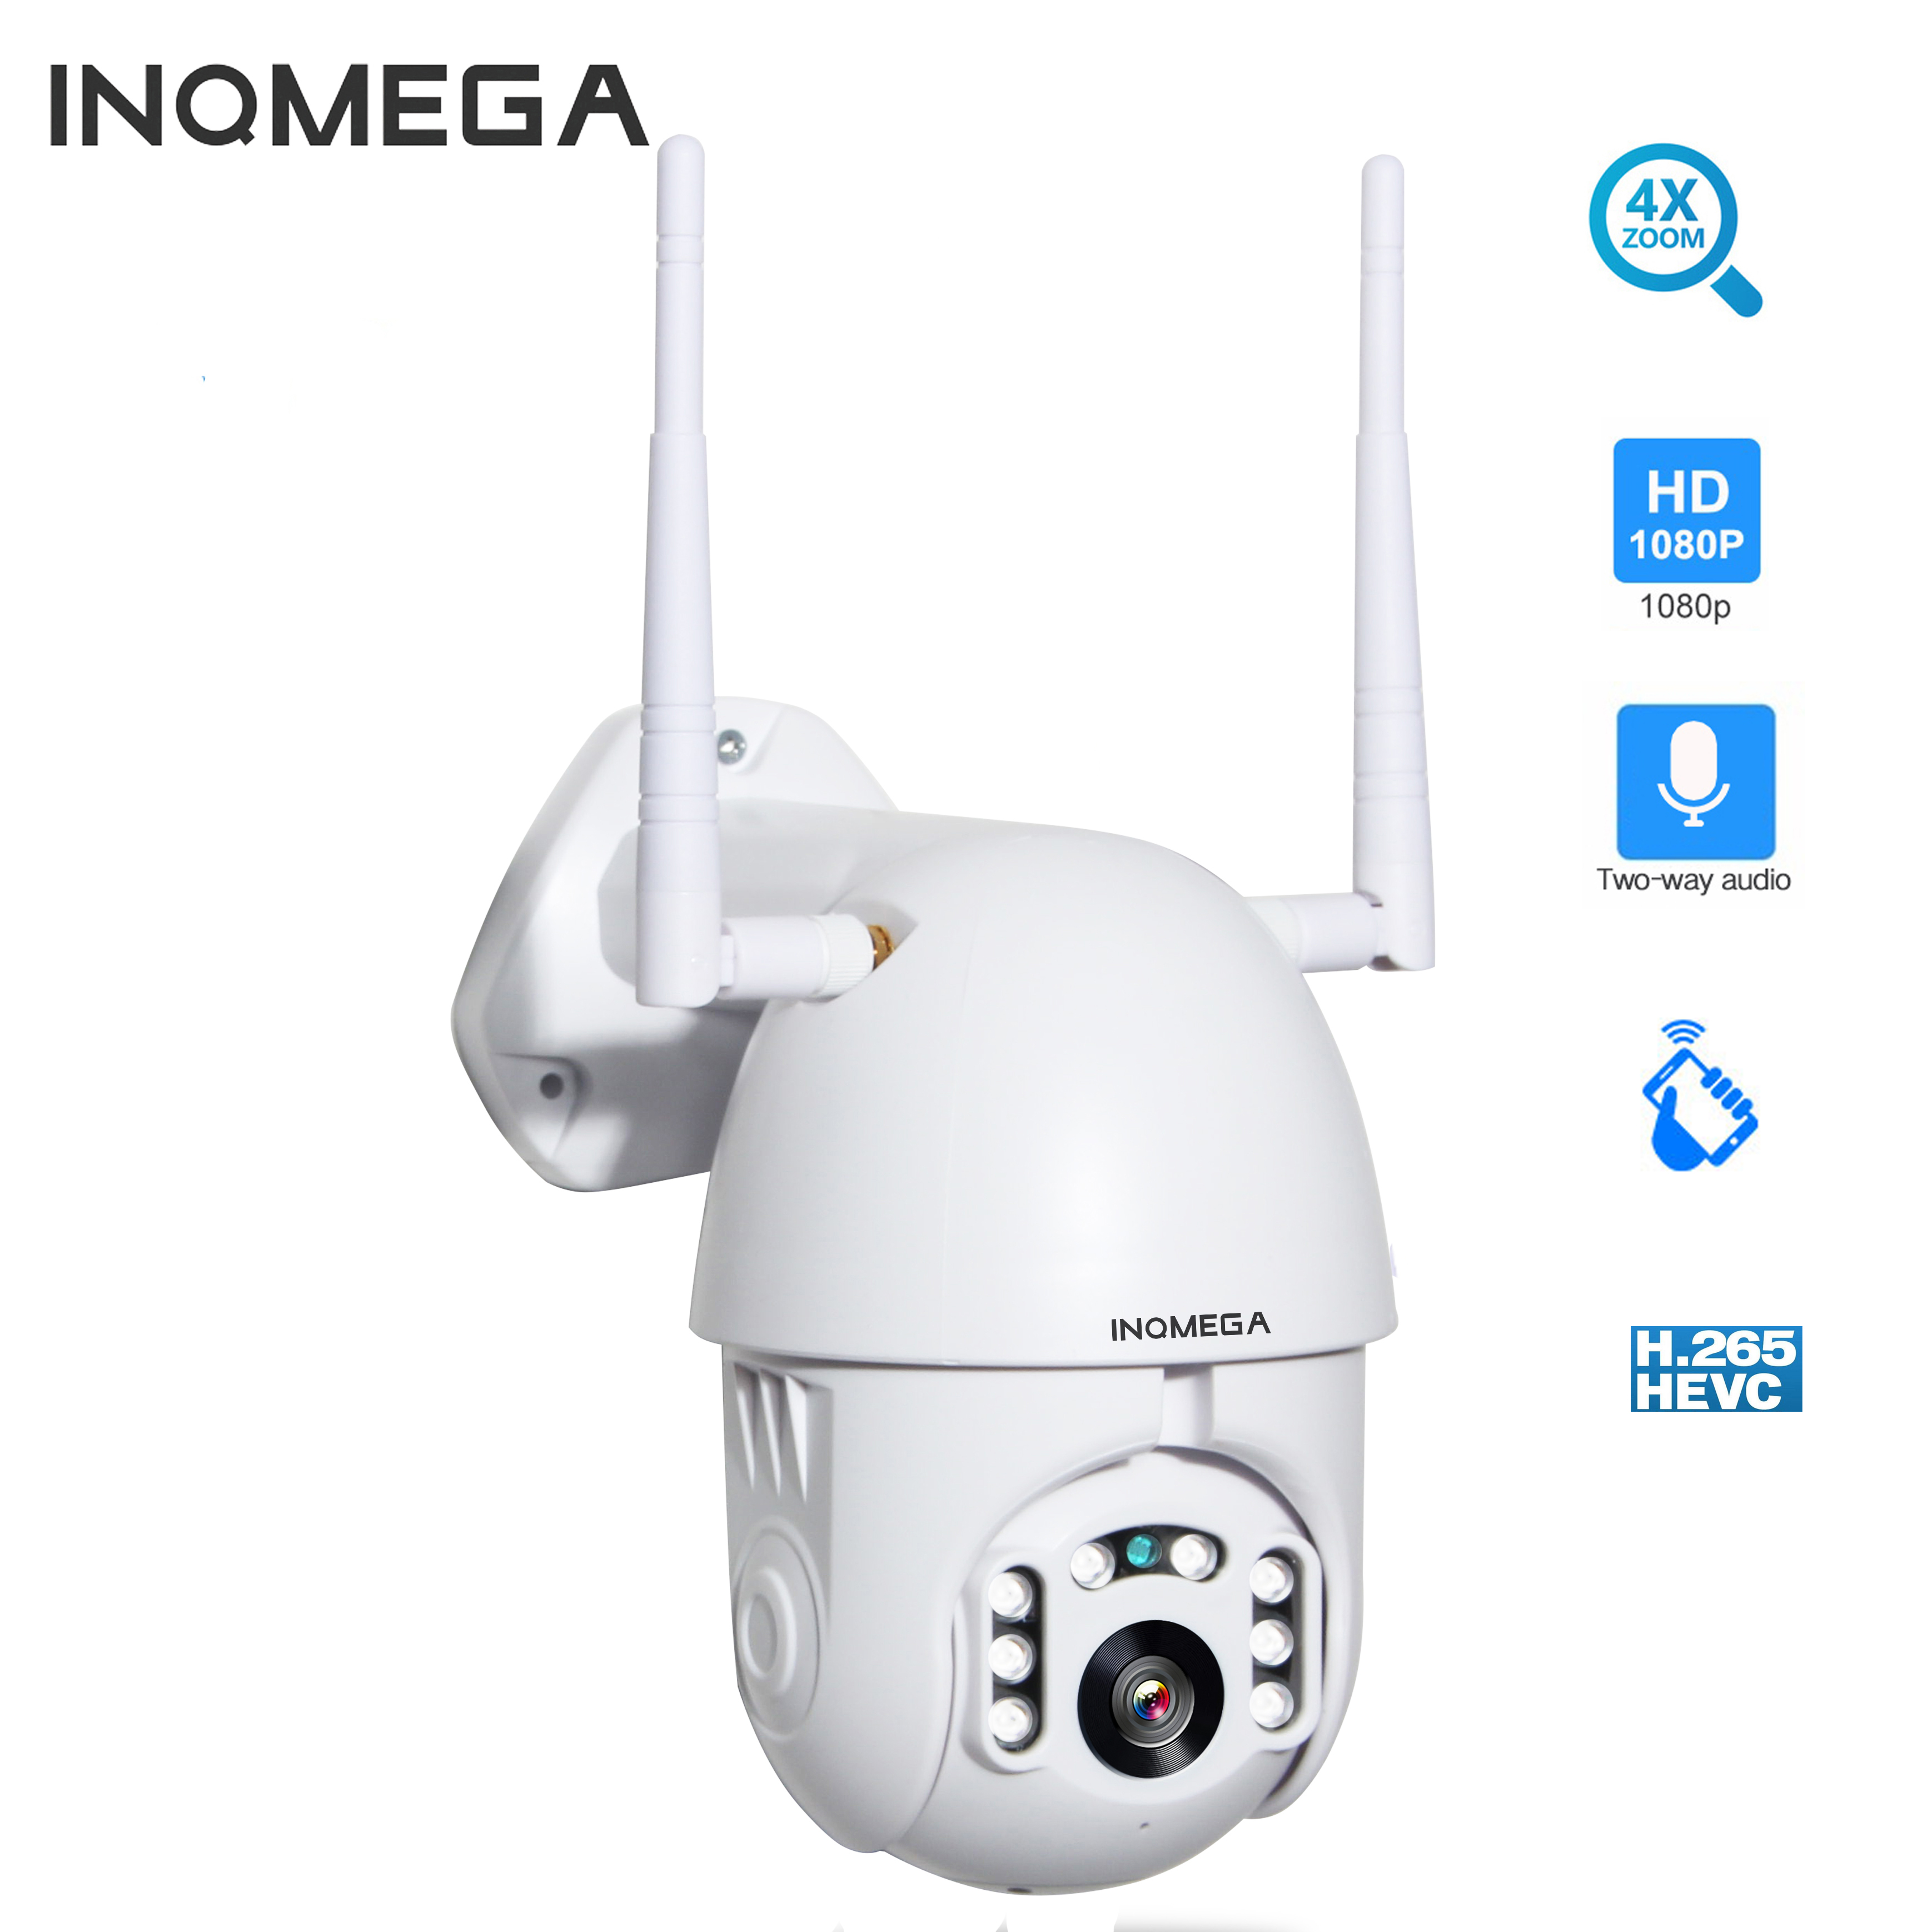 INQMEGA 1080p PTZ IP Camera Outdoor Speed 4X Digital Zoom H.265X Dome CCTV Security Cameras WIFI Exterior IR Home Surveilance